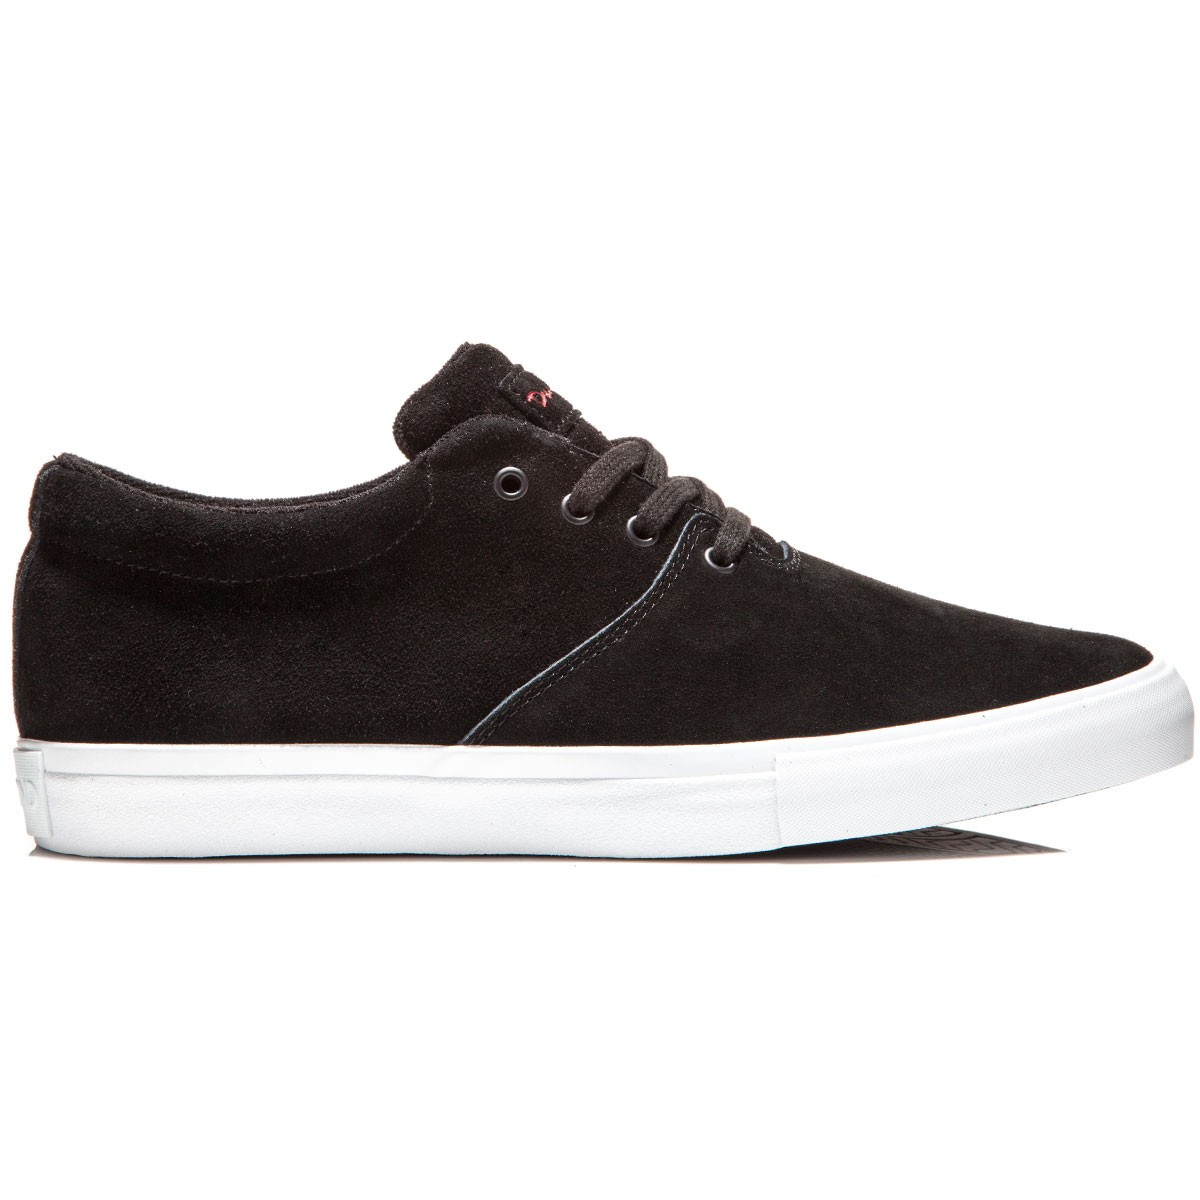 Diamond Supply Co. Torey Shoes - photo#45